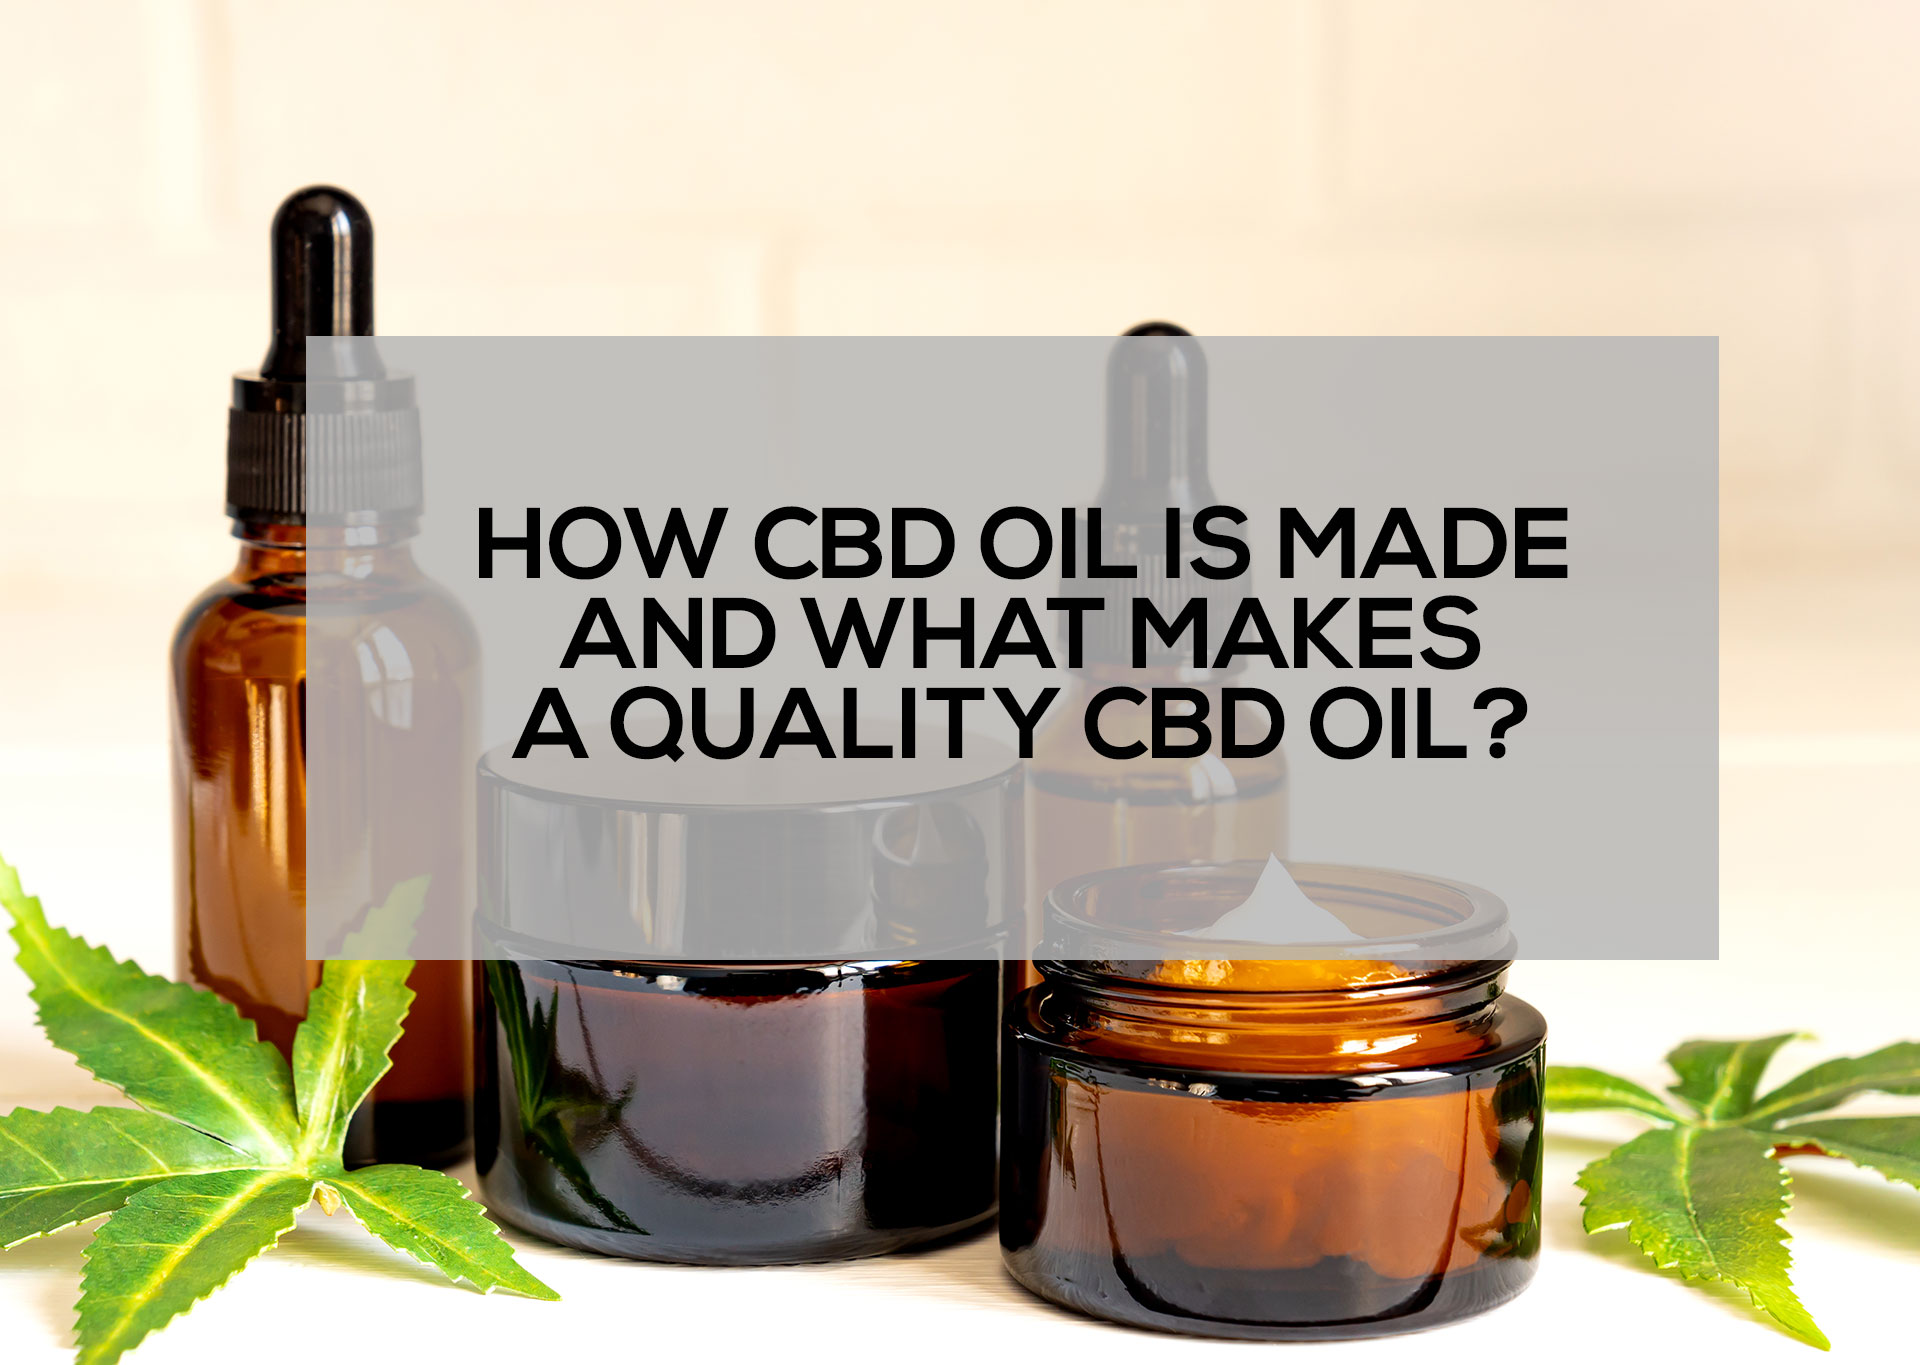 How-CBD-Oil-is-Made-and-What-Makes-a-Quality-CBD-Oil